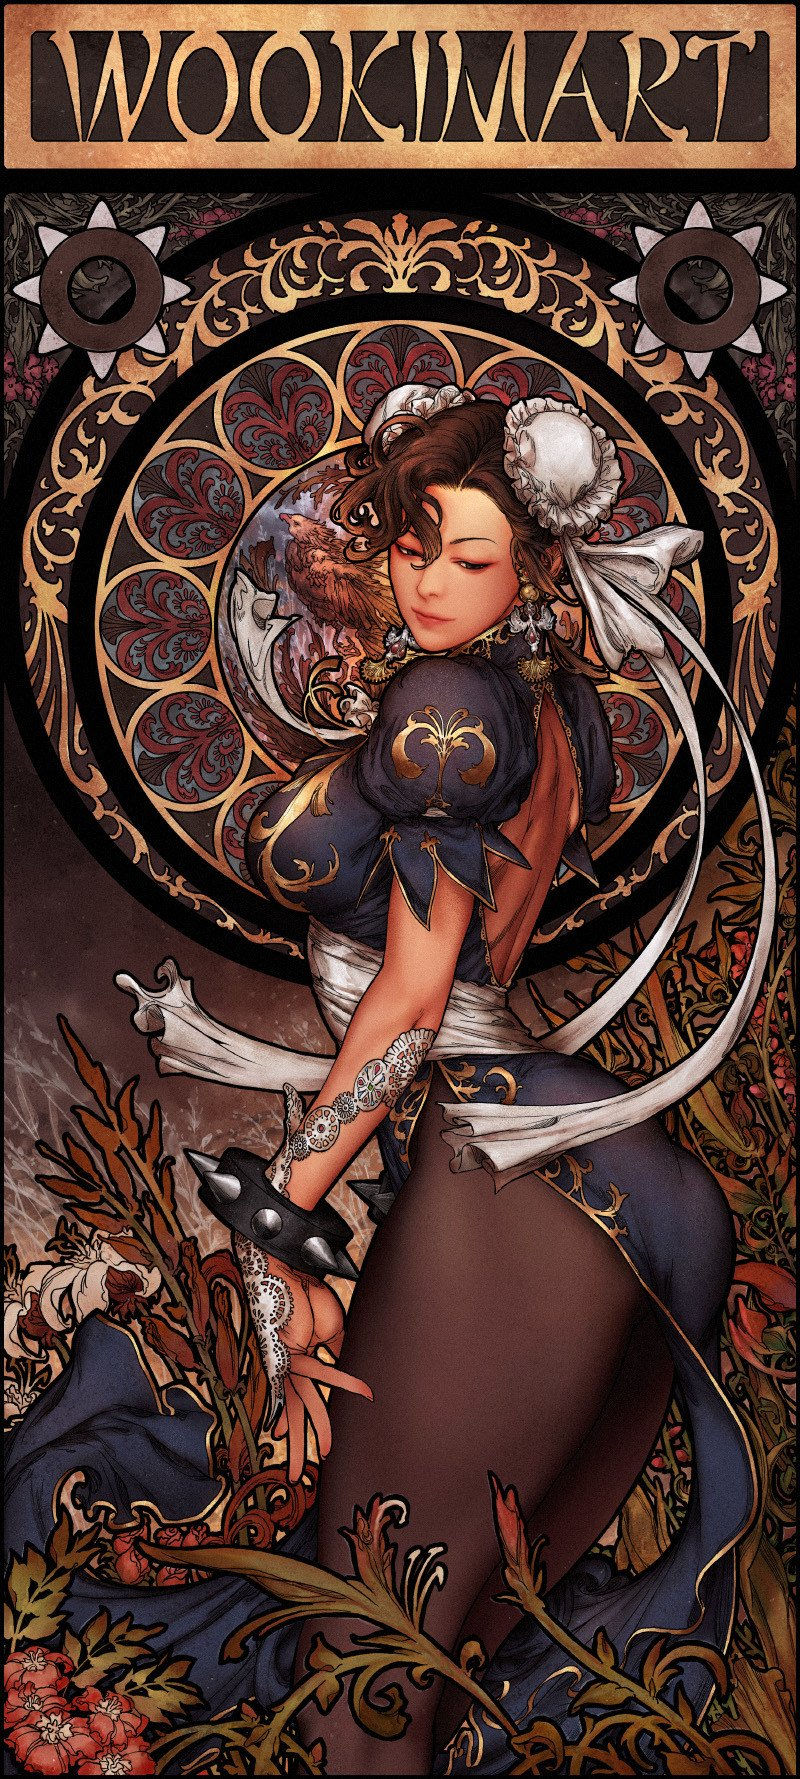 """Art Nouveau Chun-Li"" par Woo Kim #StreetFighter #Capcom https://t.co/fVWSOA6pRE"